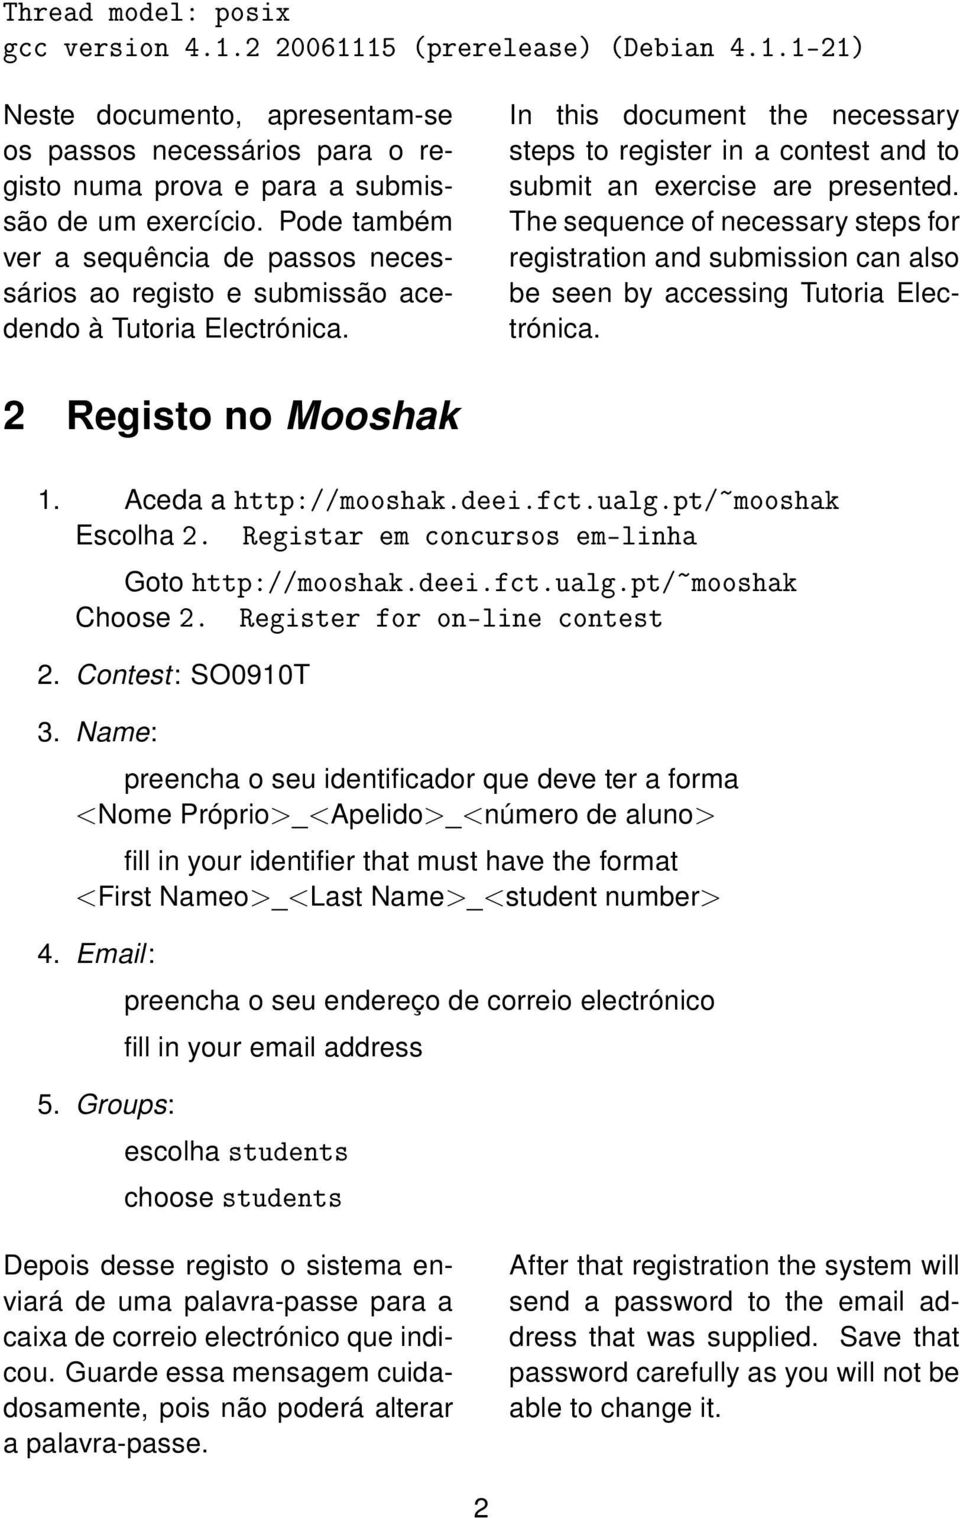 In this document the necessary steps to register in a contest and to submit an exercise are presented.